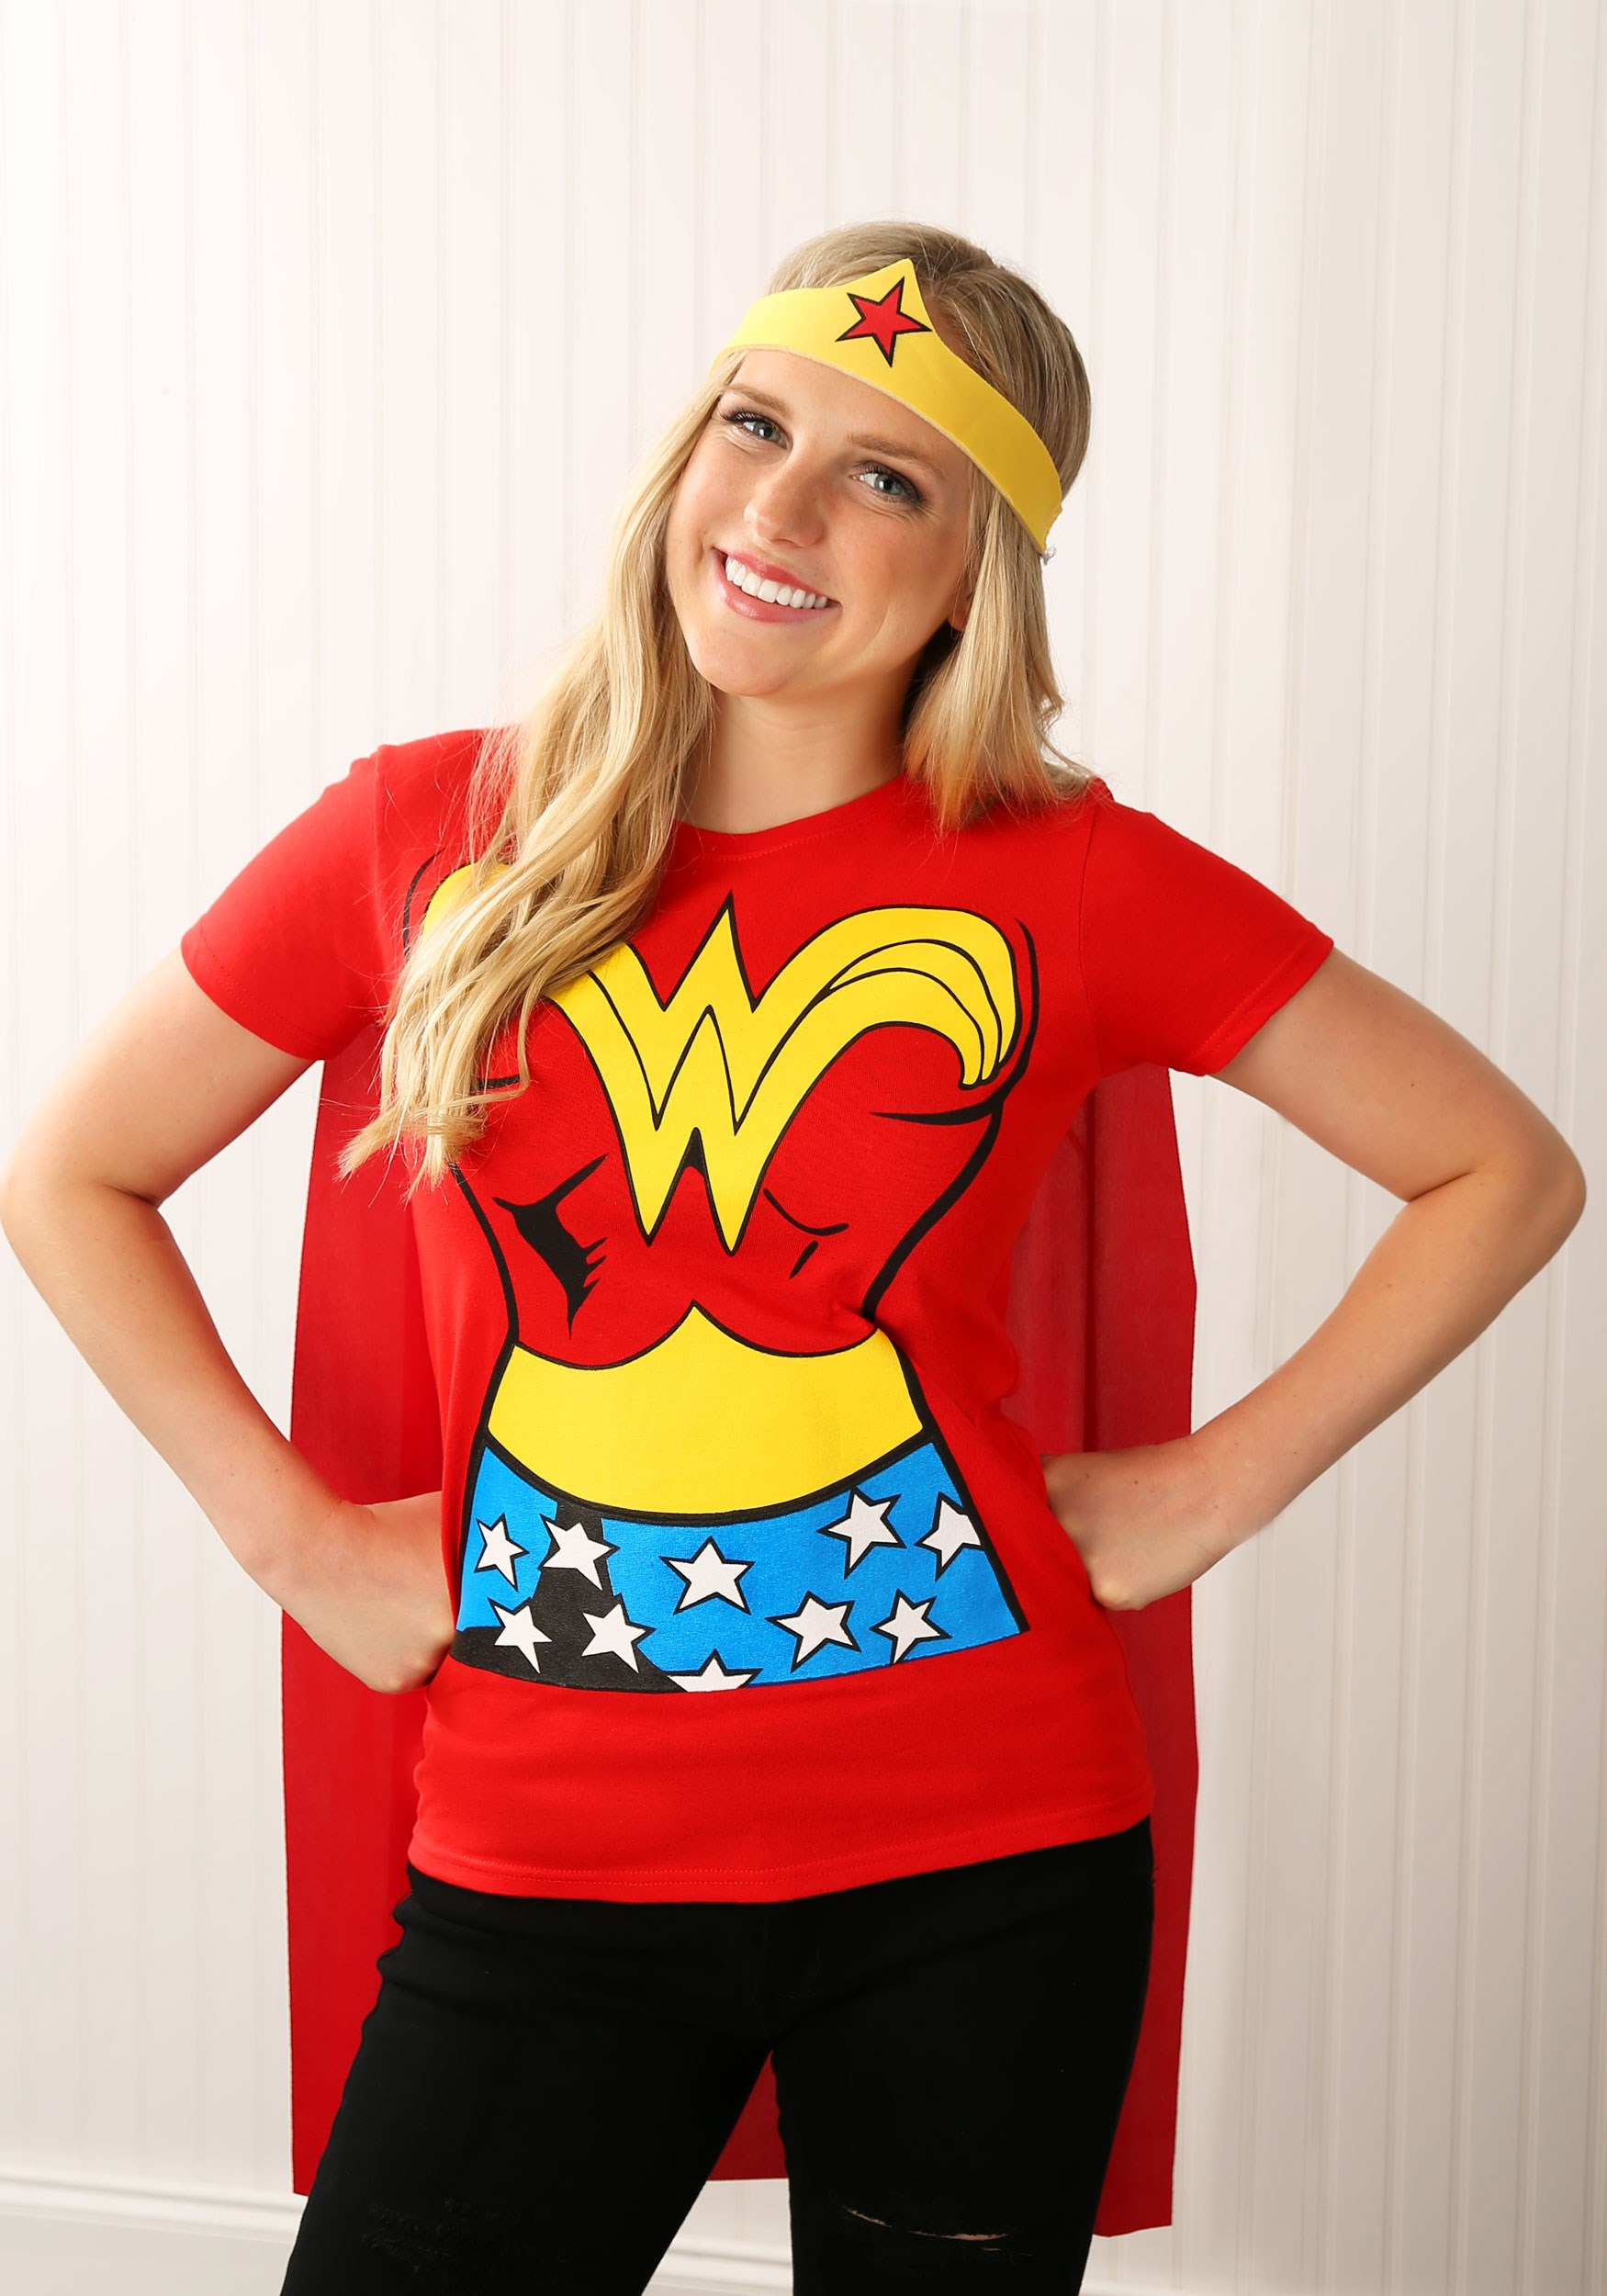 Superhero Wonder Woman T Shirt Costume Womens Superhero Costume Ideas